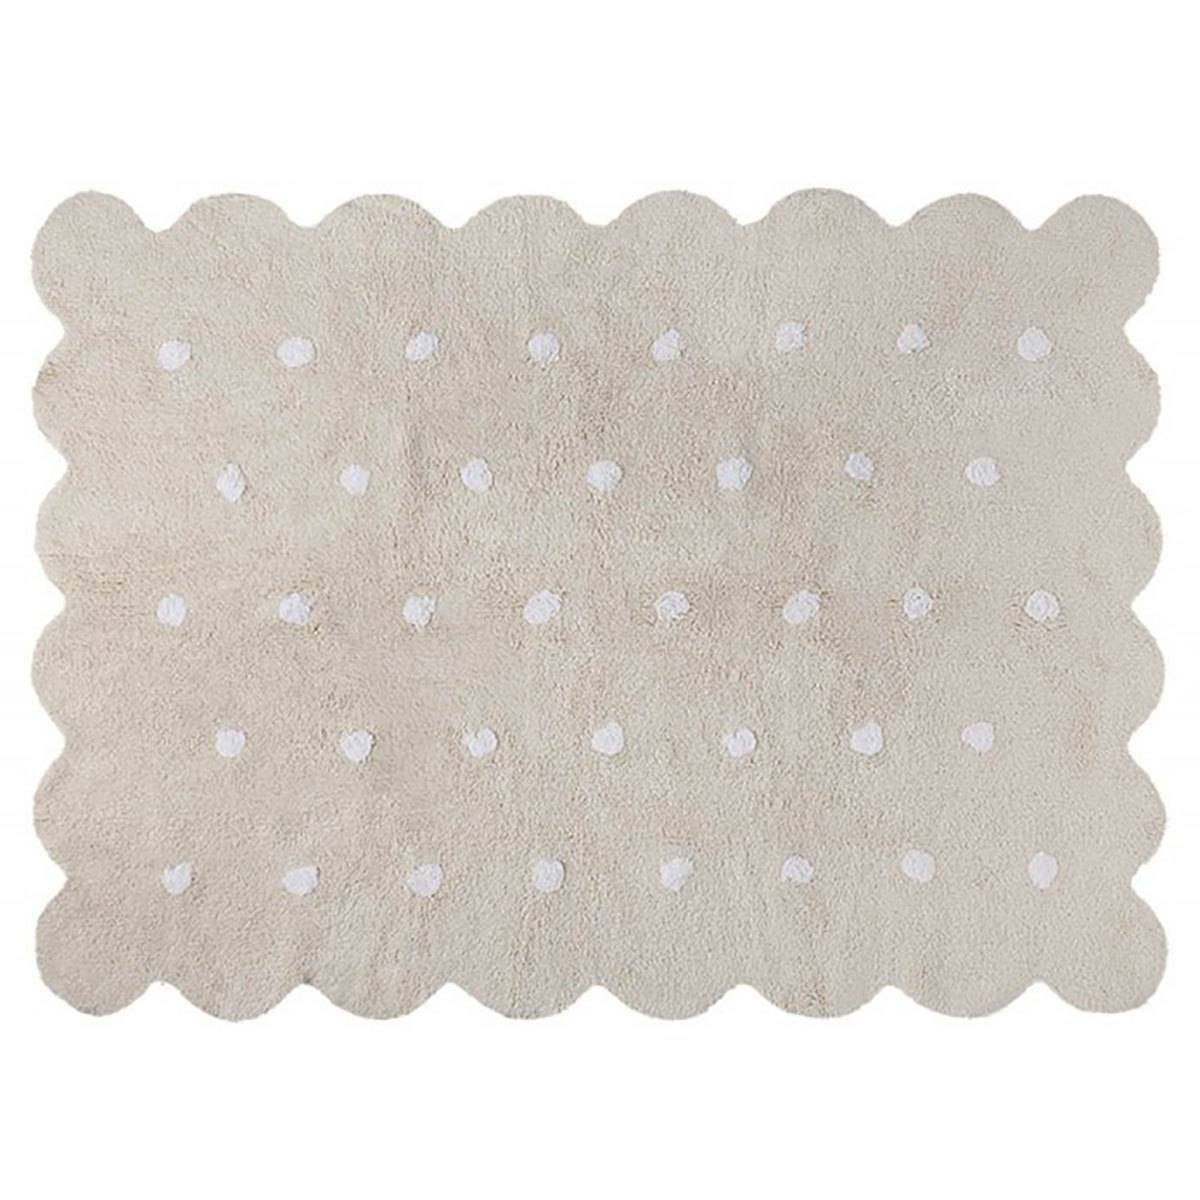 Lorena Canals Tapis Lavable Biscuit Beige  - 120 x 160 cm